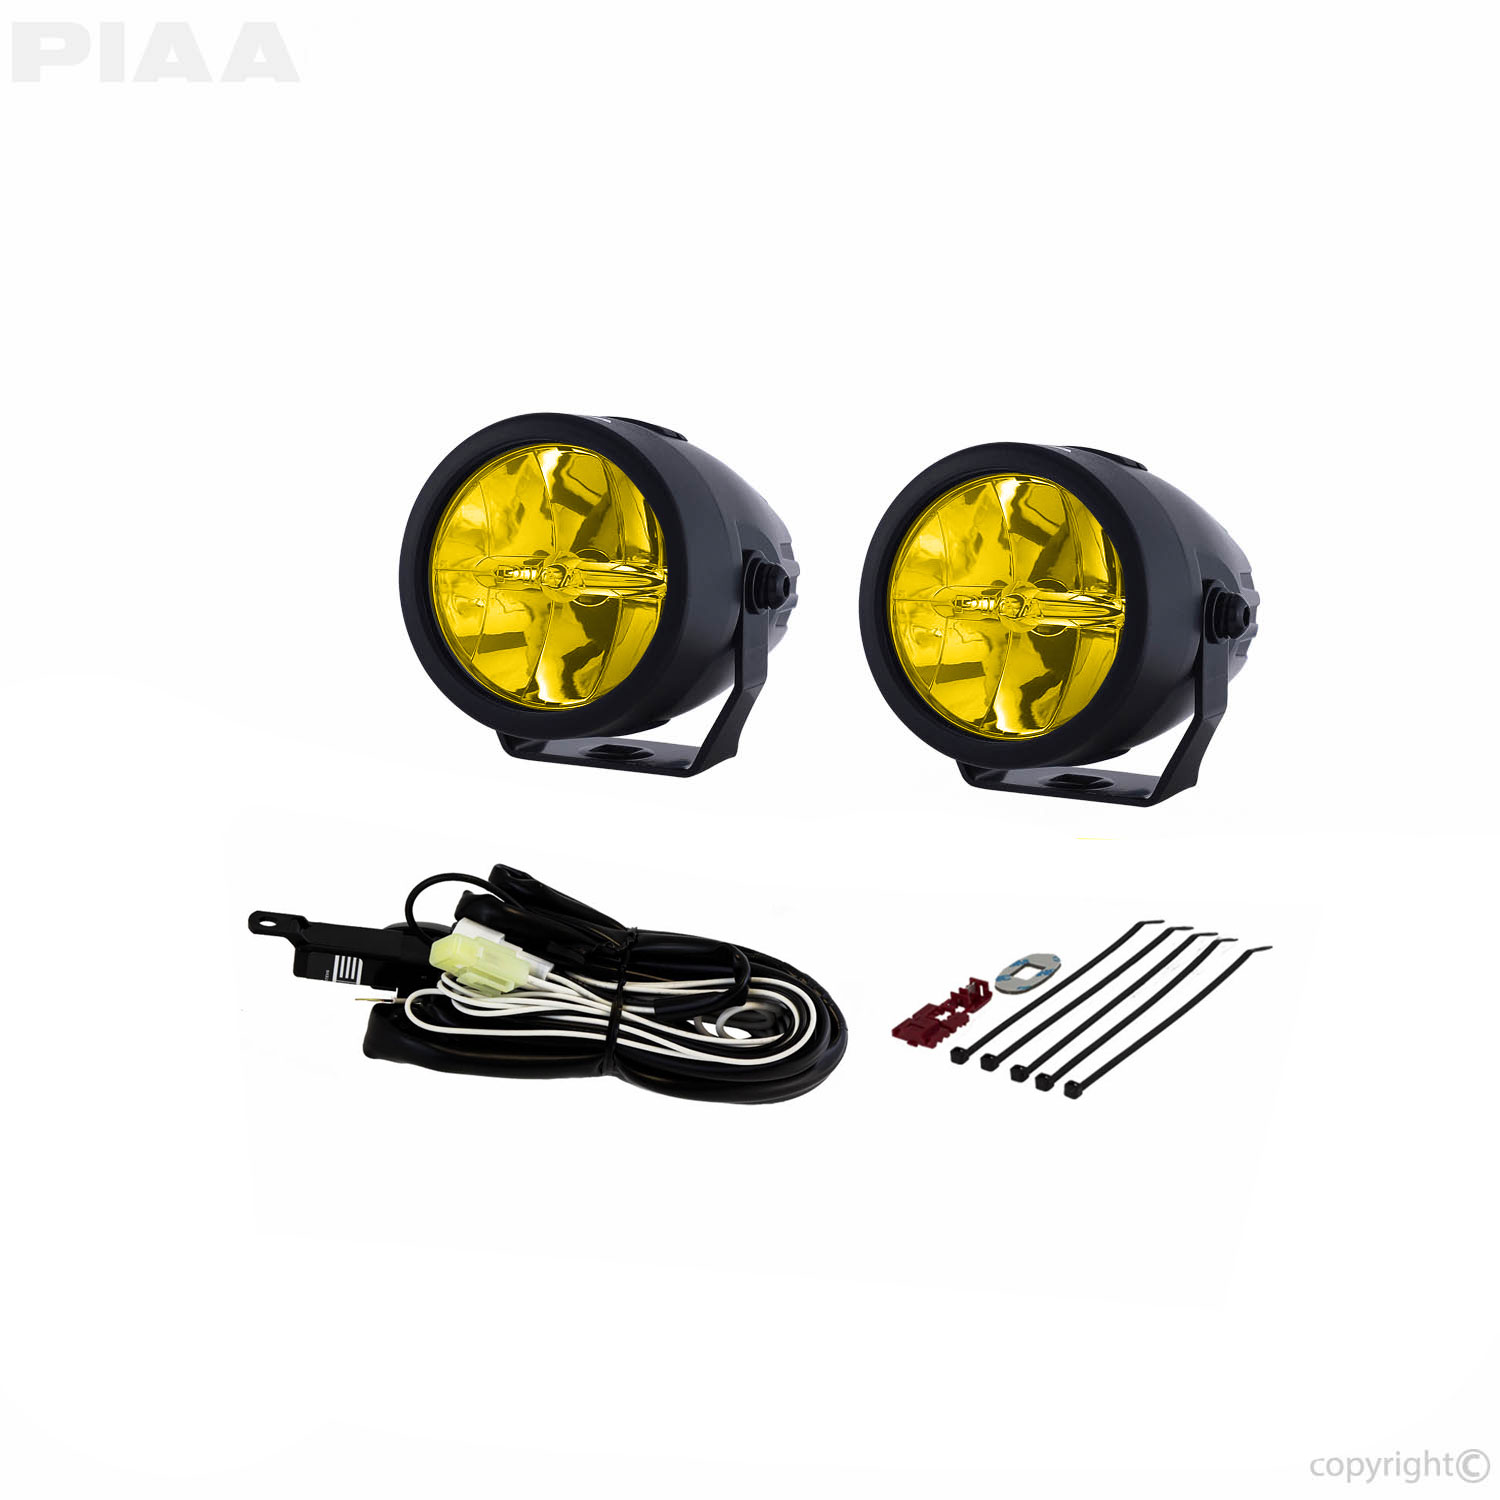 piaa 22 02772 lp270 led contents?bw=1000&w=1000&bh=1000&h=1000 piaa led lights for yamaha motorcycles High Intensity LED Driving Lights at crackthecode.co